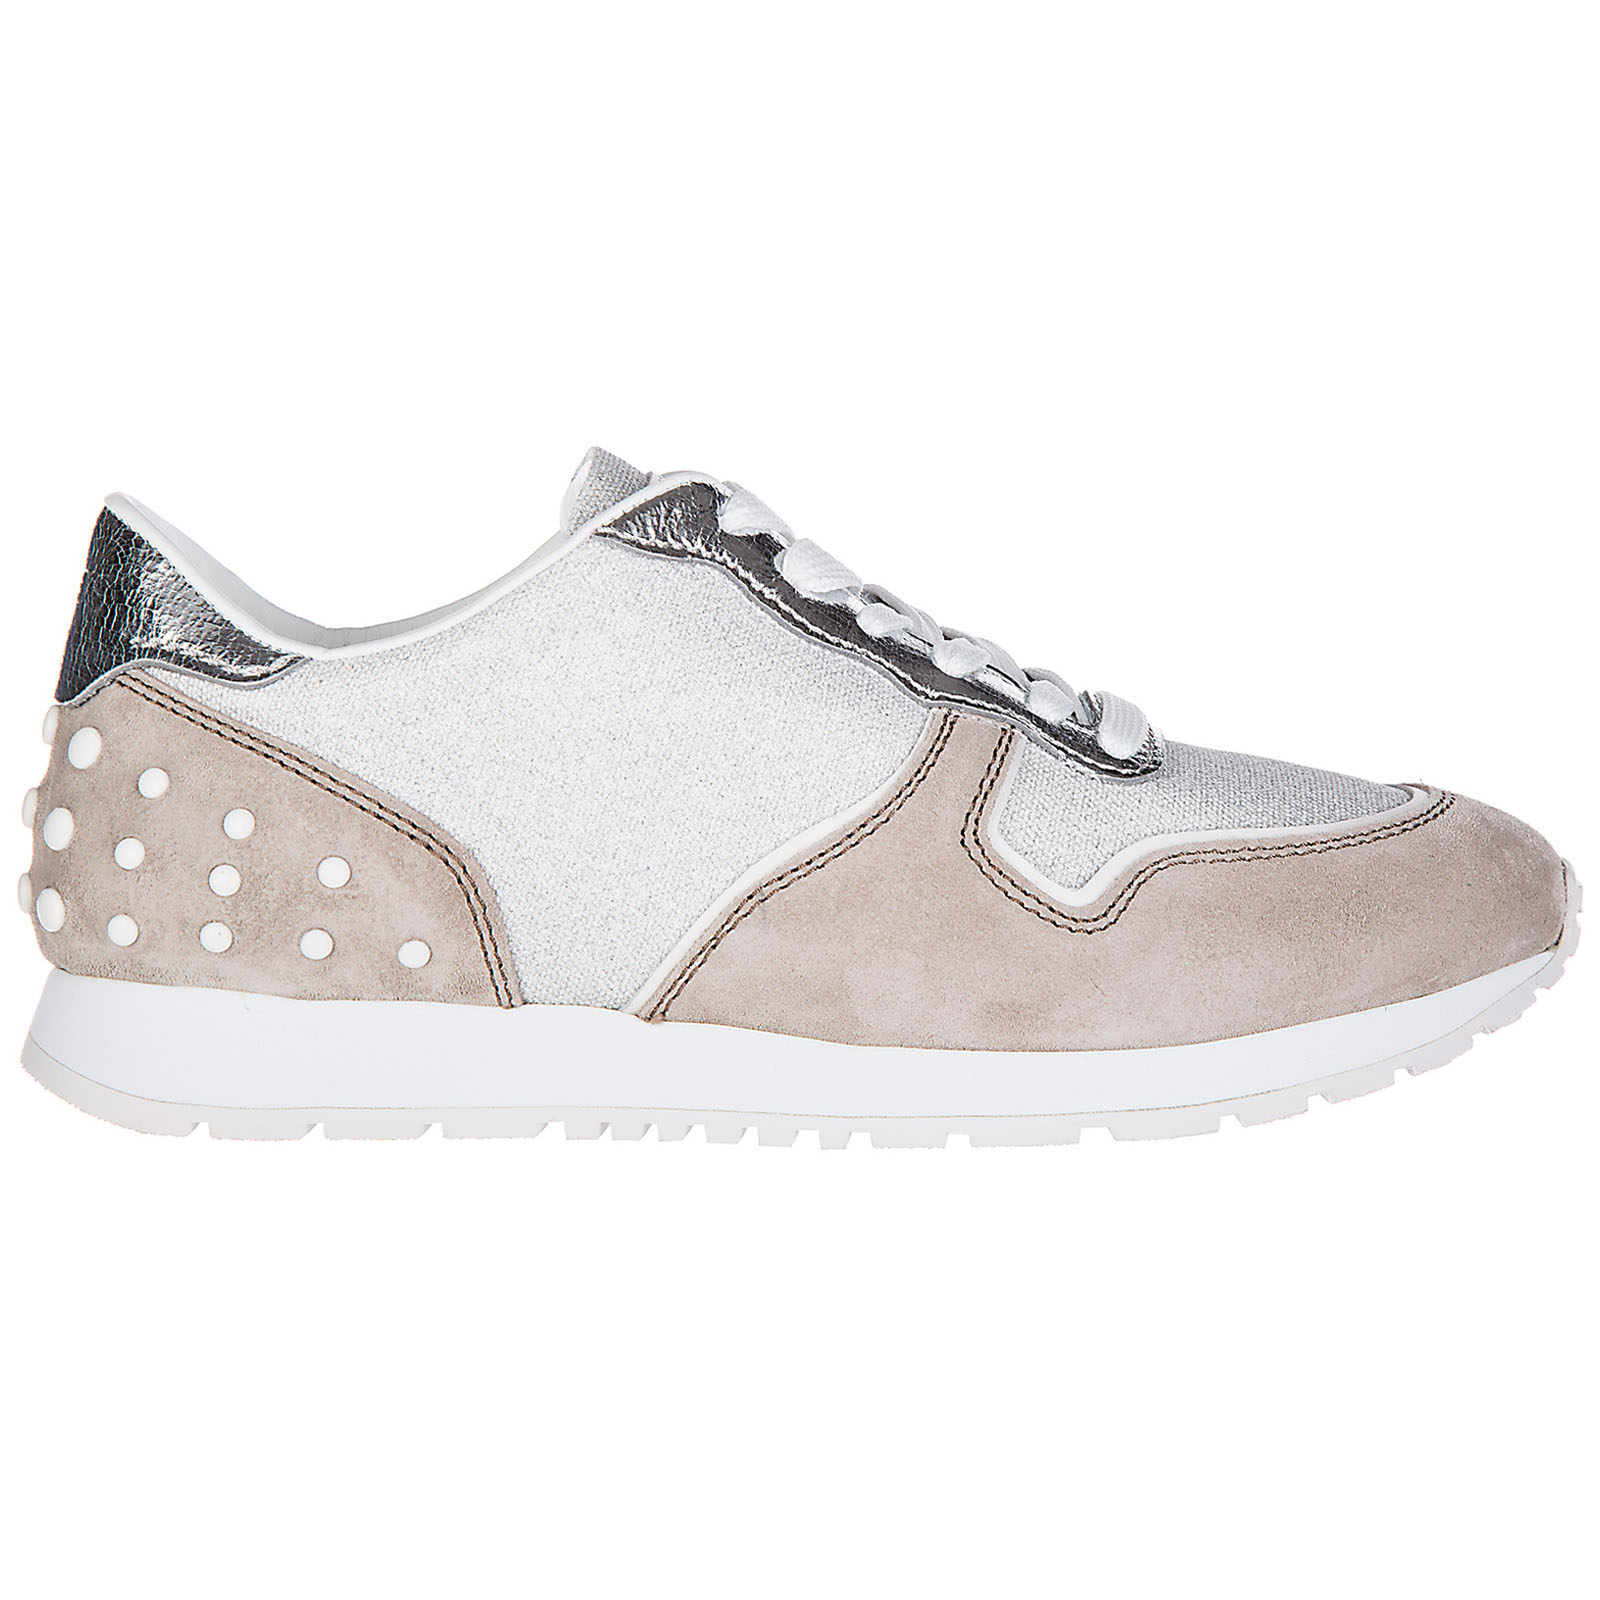 Women's shoes suede trainers sneakers sportivo